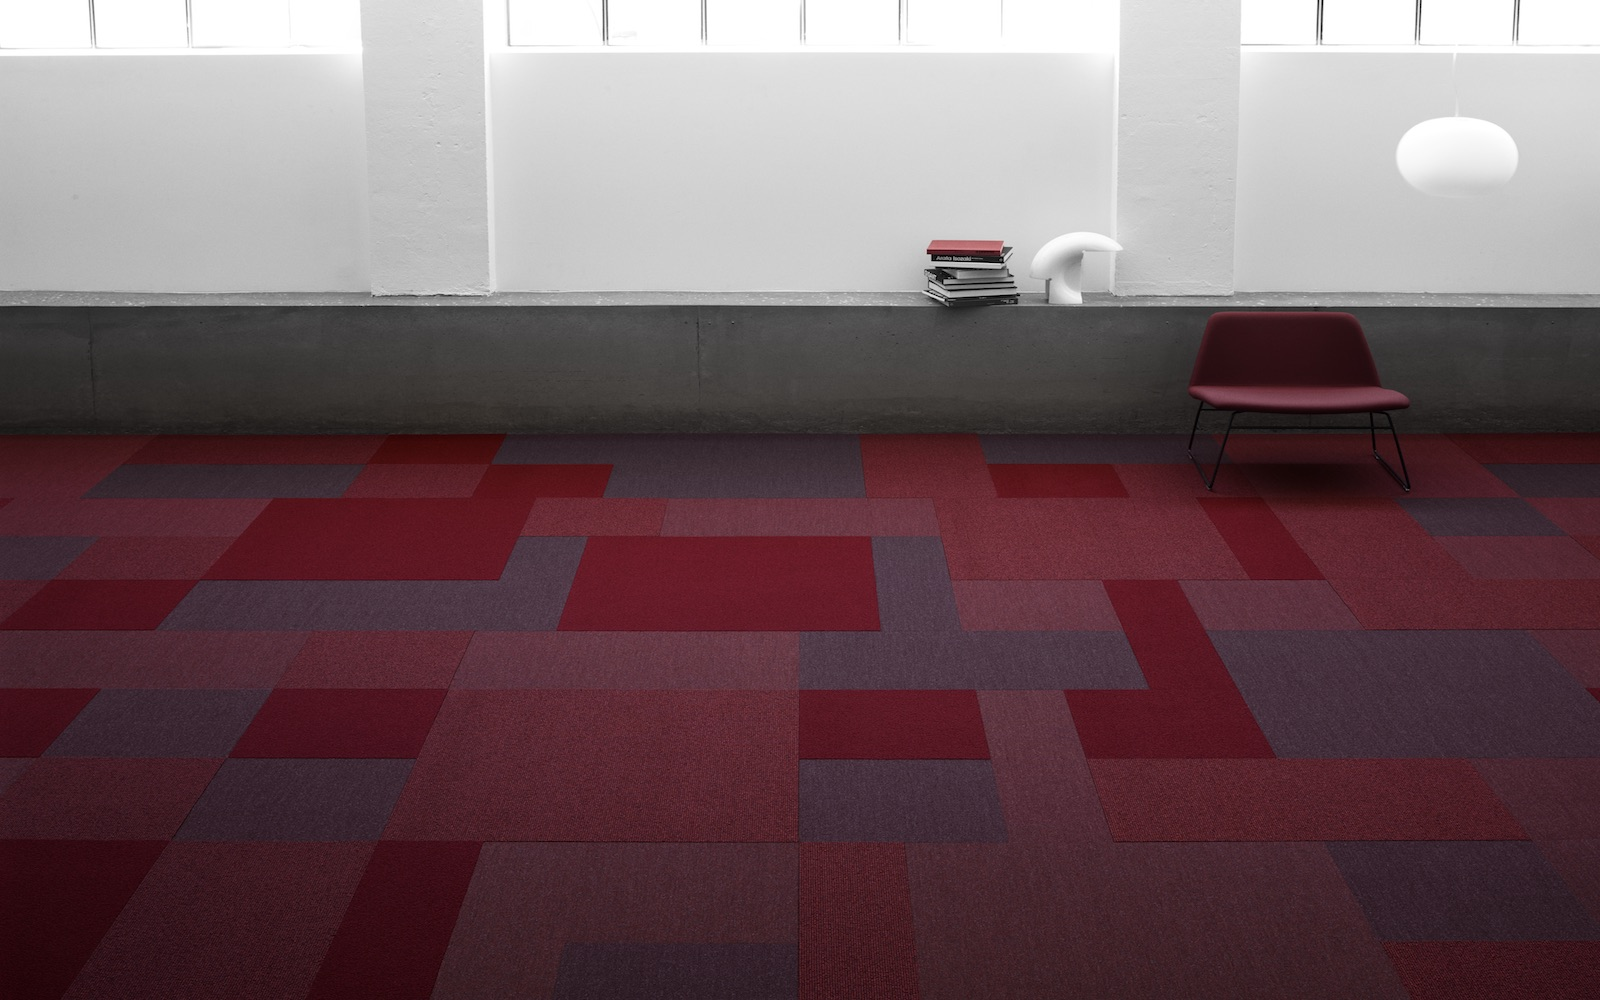 Carpet-tiles-for-hospitality-in-shades-of-red-and-grey